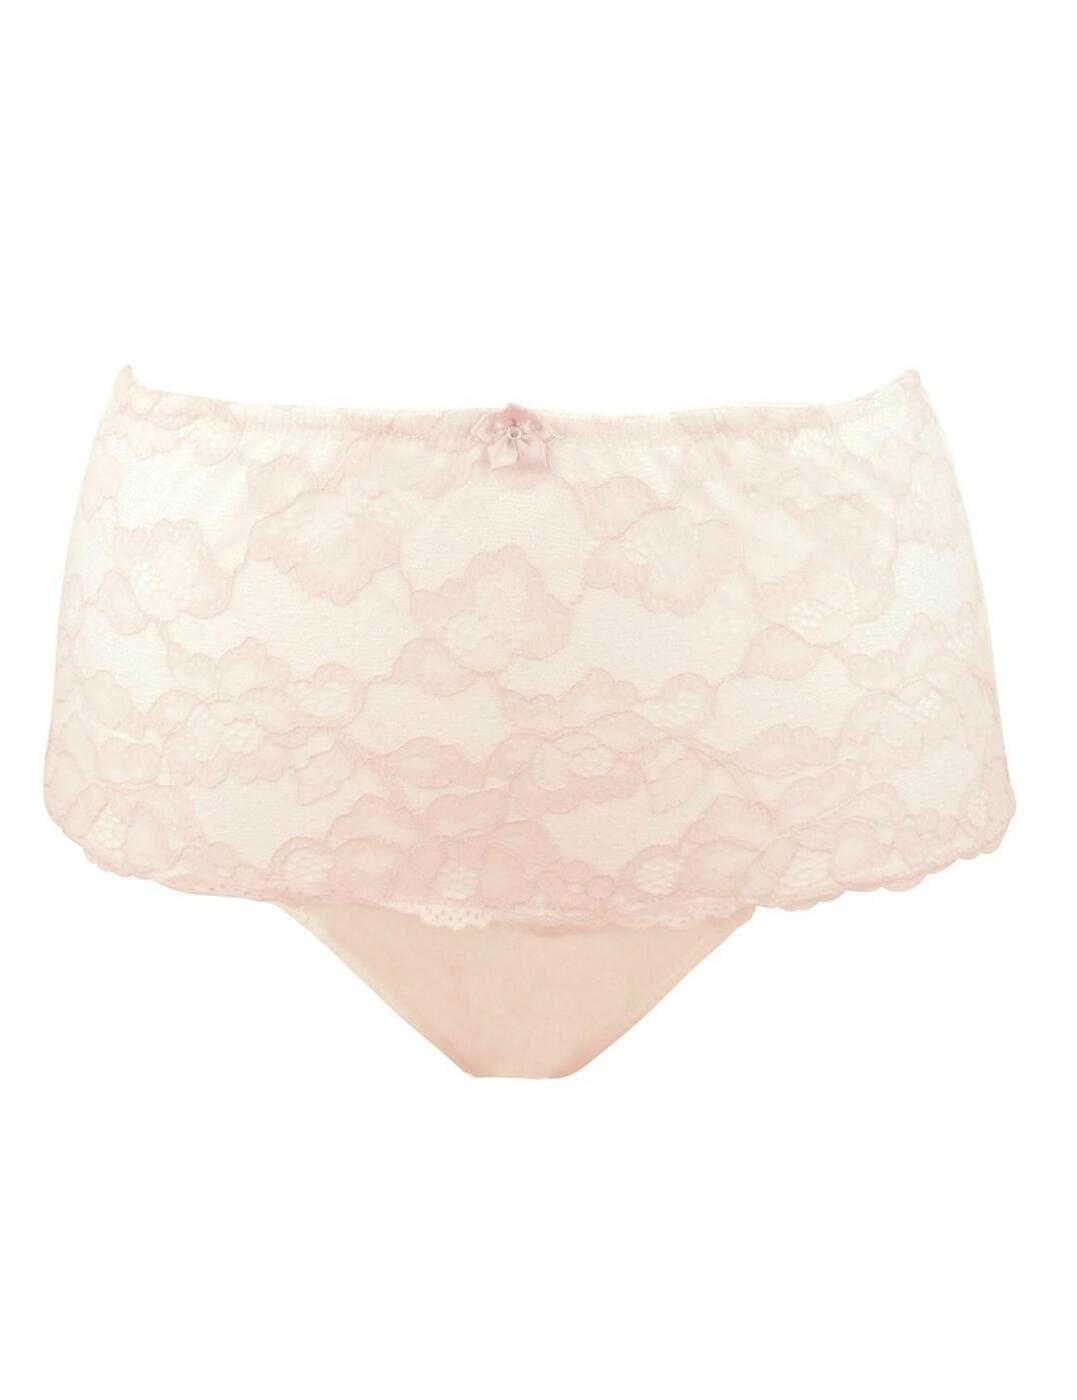 Pour Moi St Tropez Brief Deep Lace Knickers 41004 Full Rear Coverage Lingerie